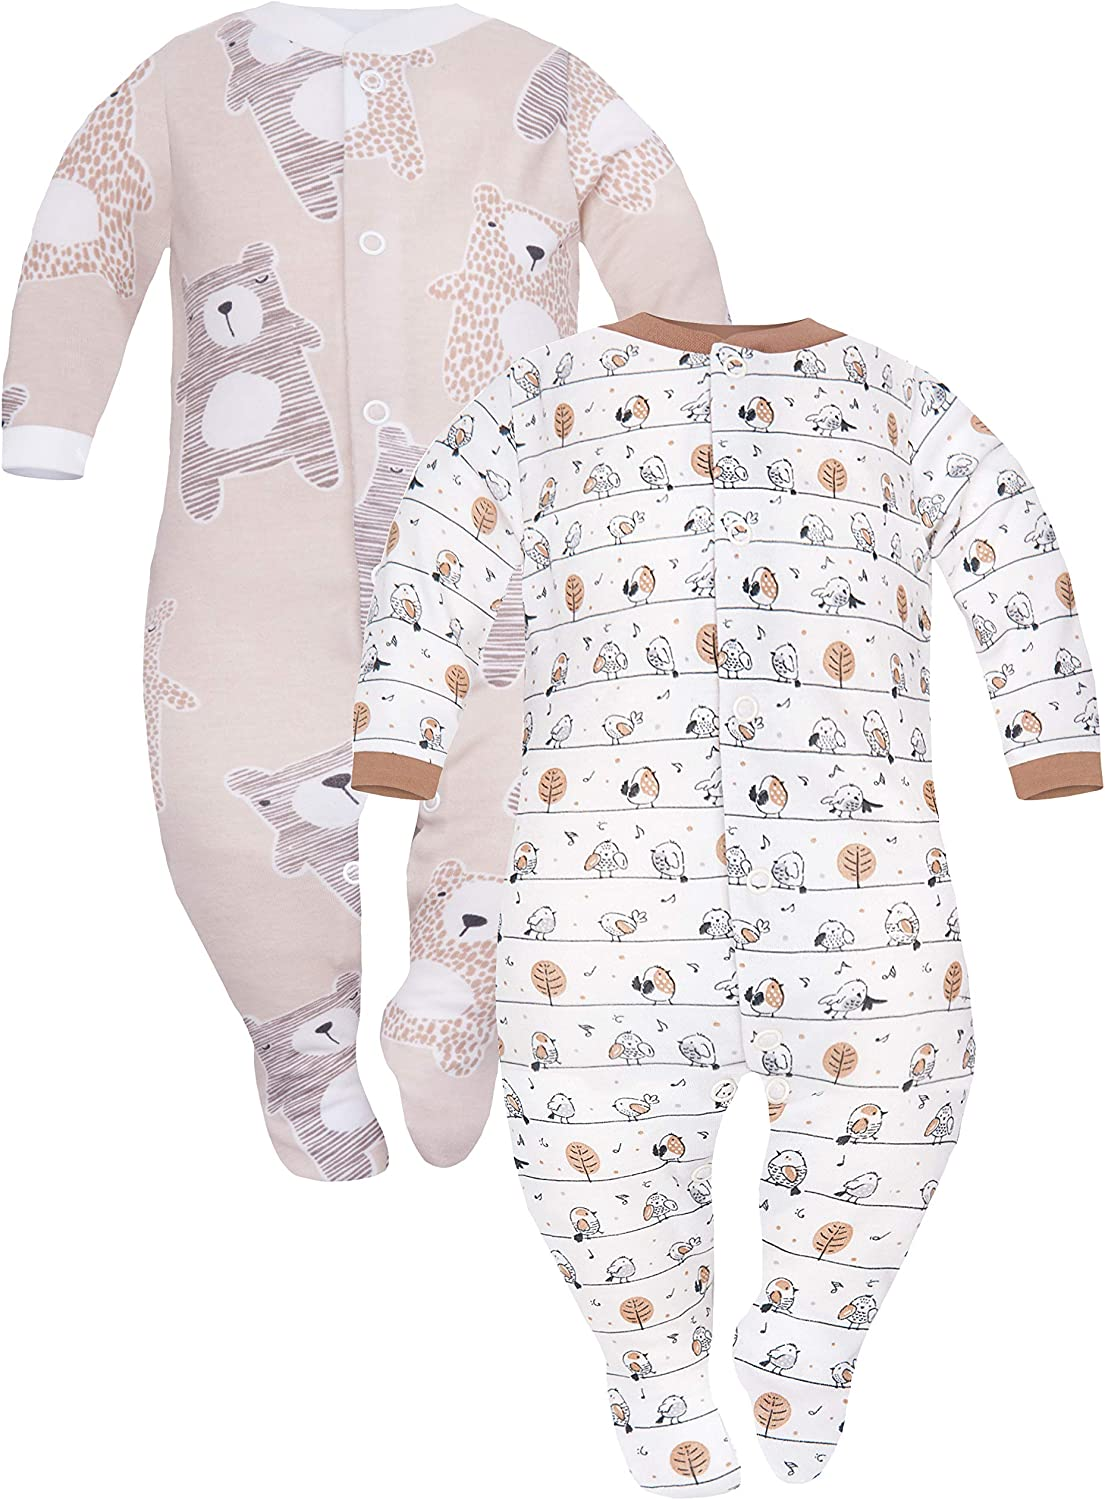 SIBINULO Baby Boys Baby Girls Sleepsuit with ABS Mix Sizes 9-24 Months Pack of 2